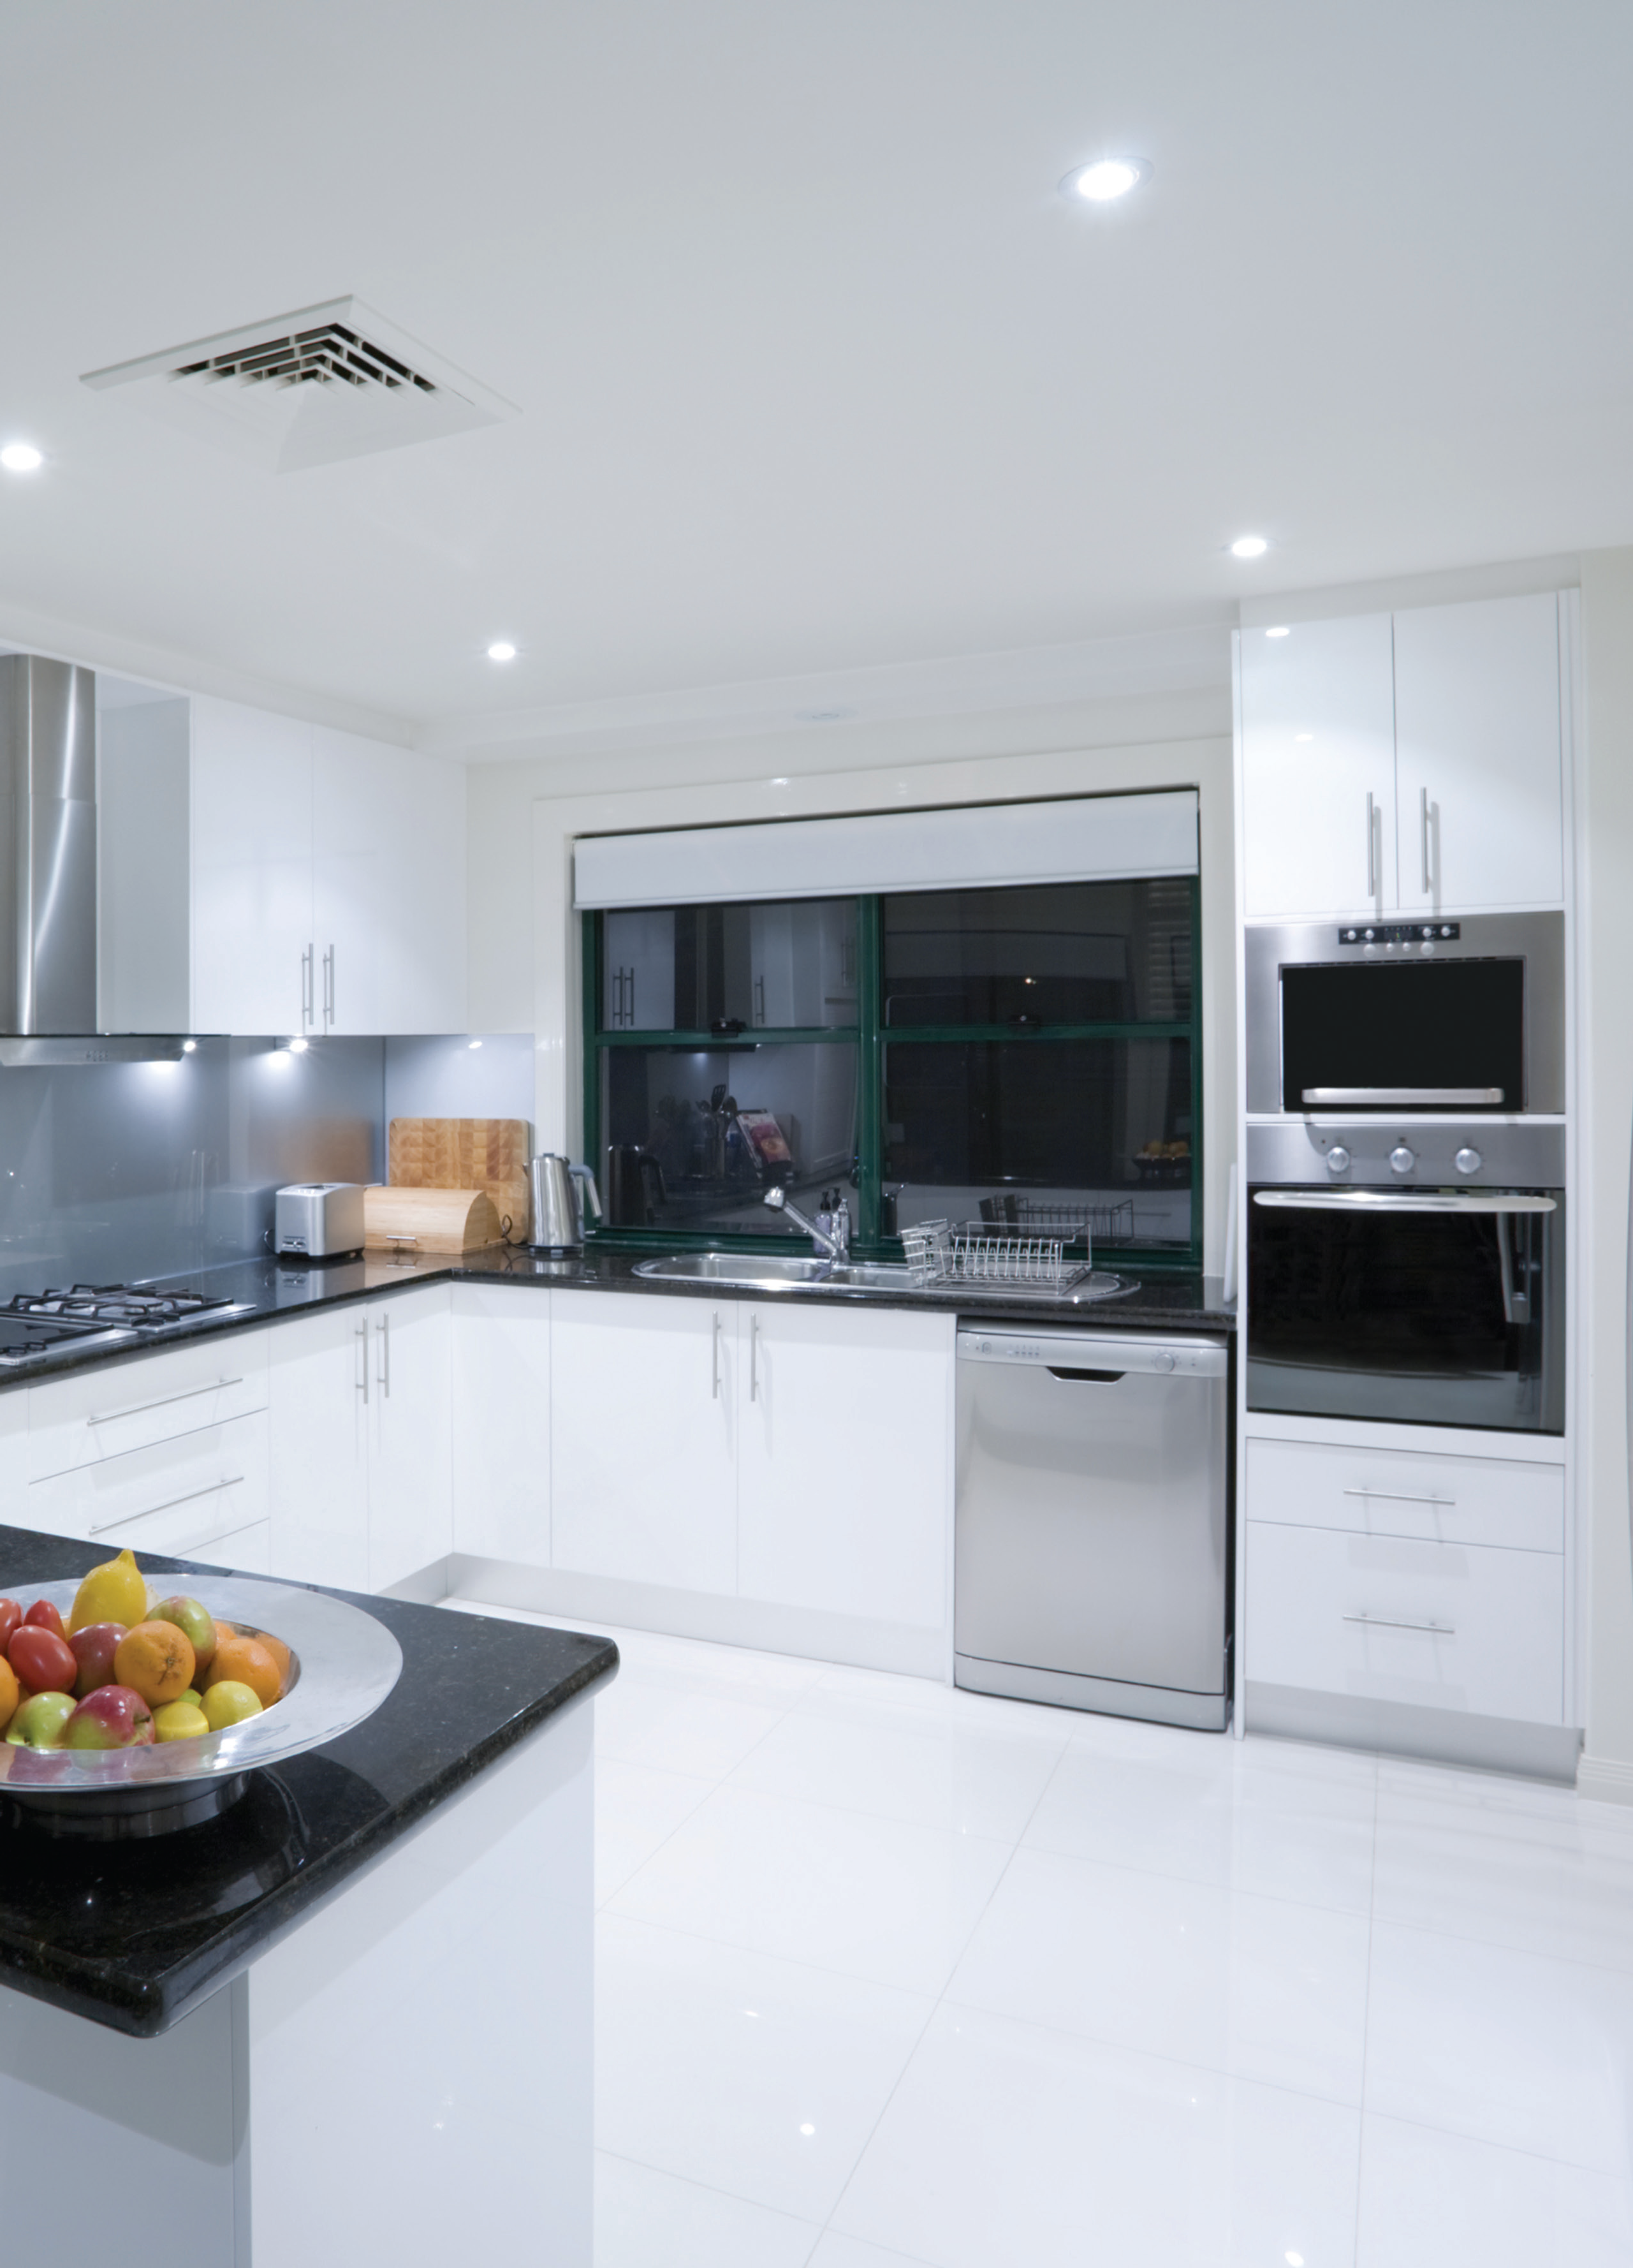 Flawless #Kitchen #Inspiration! Built in Appliances from Nagold by ...